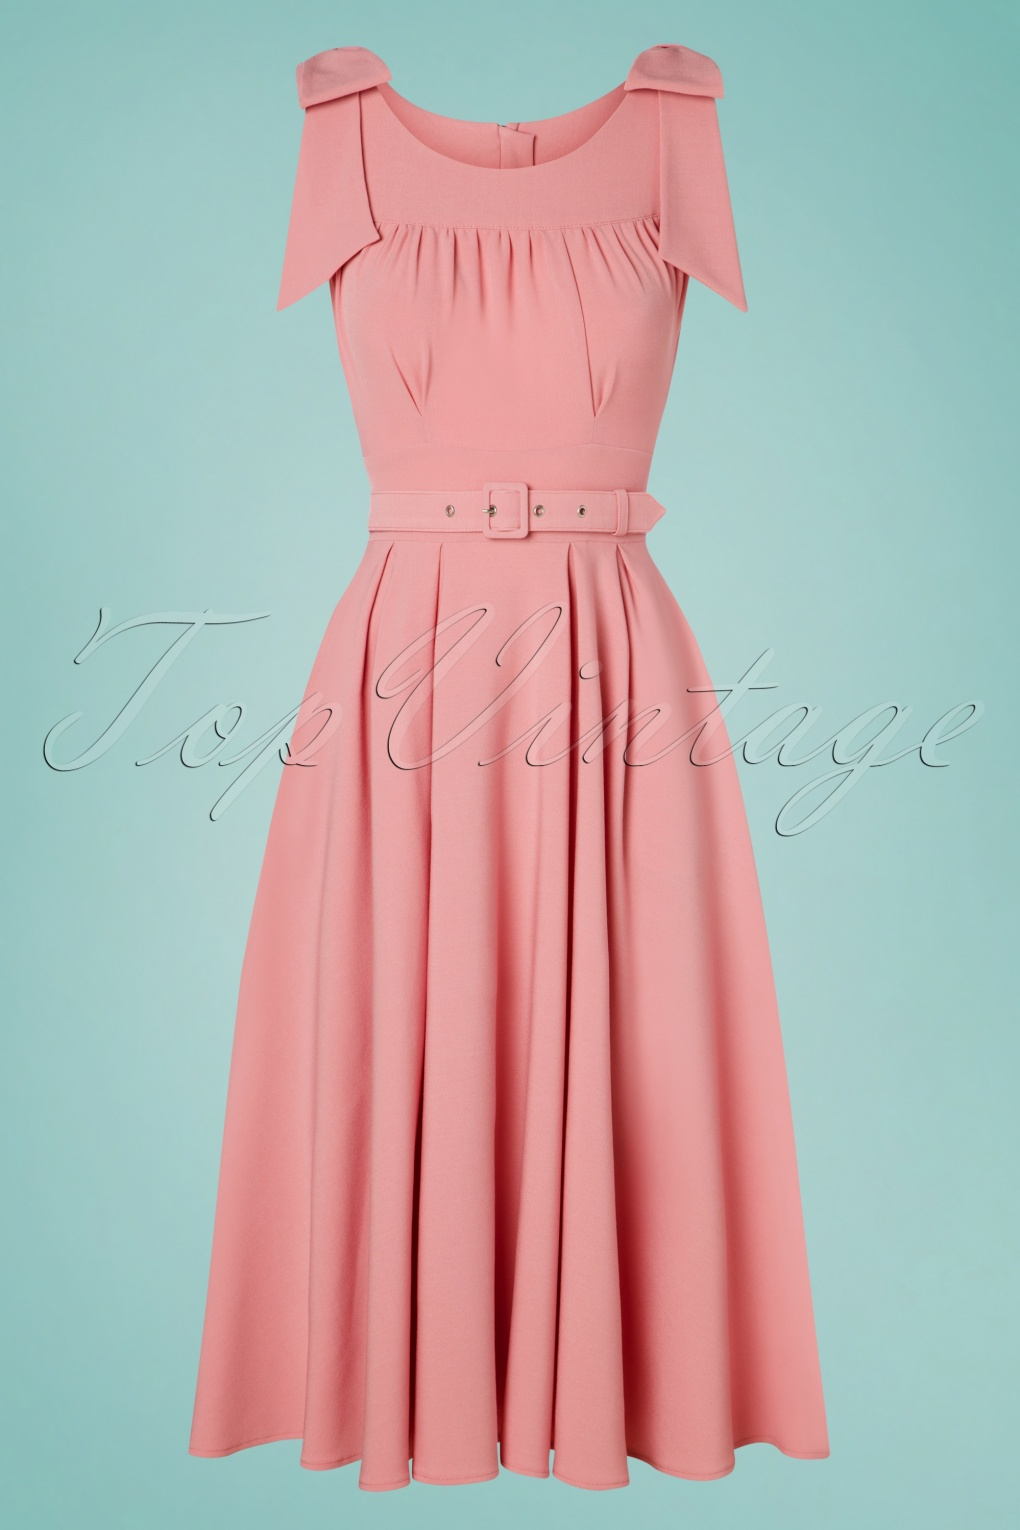 500 Vintage Style Dresses for Sale | Vintage Inspired Dresses 50s Gia Nina Dress in Rose Pink £100.85 AT vintagedancer.com